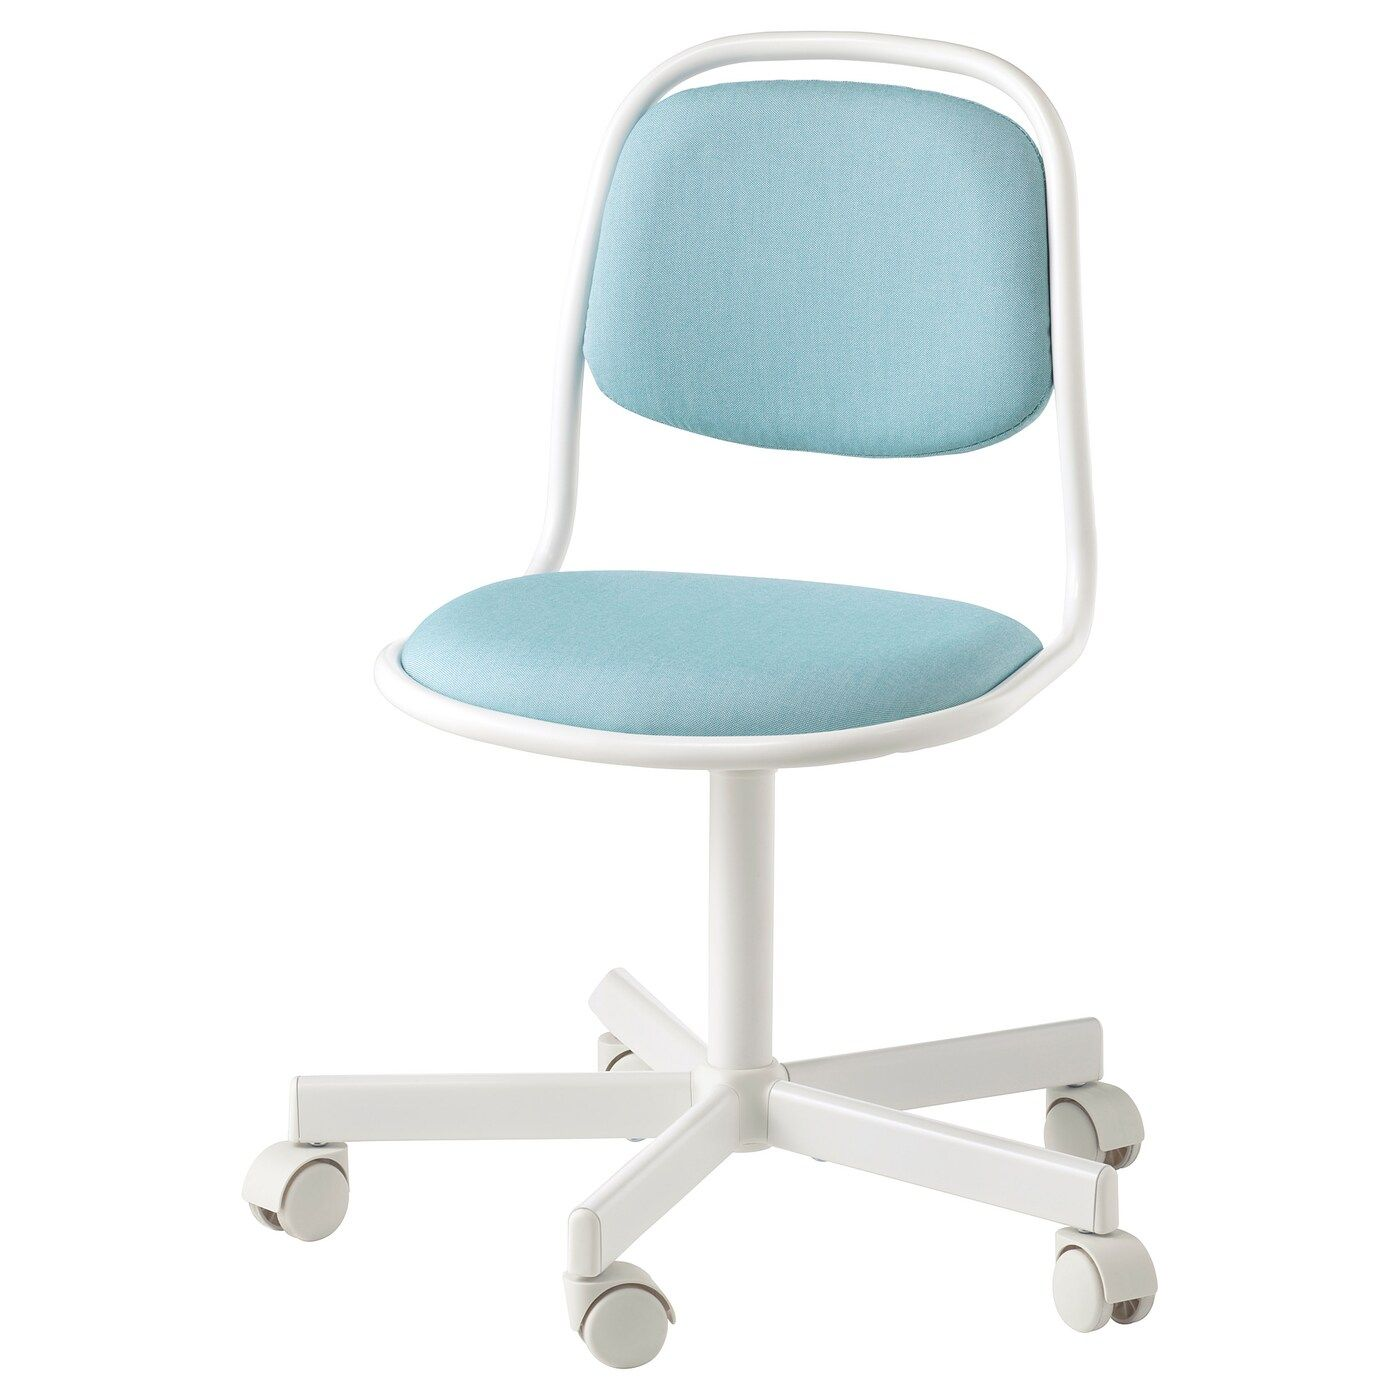 Orfjall Child S Desk Chair White Vissle Blue Green Ikea In 2020 Childrens Desk And Chair Kids Desk Chair Kid Desk